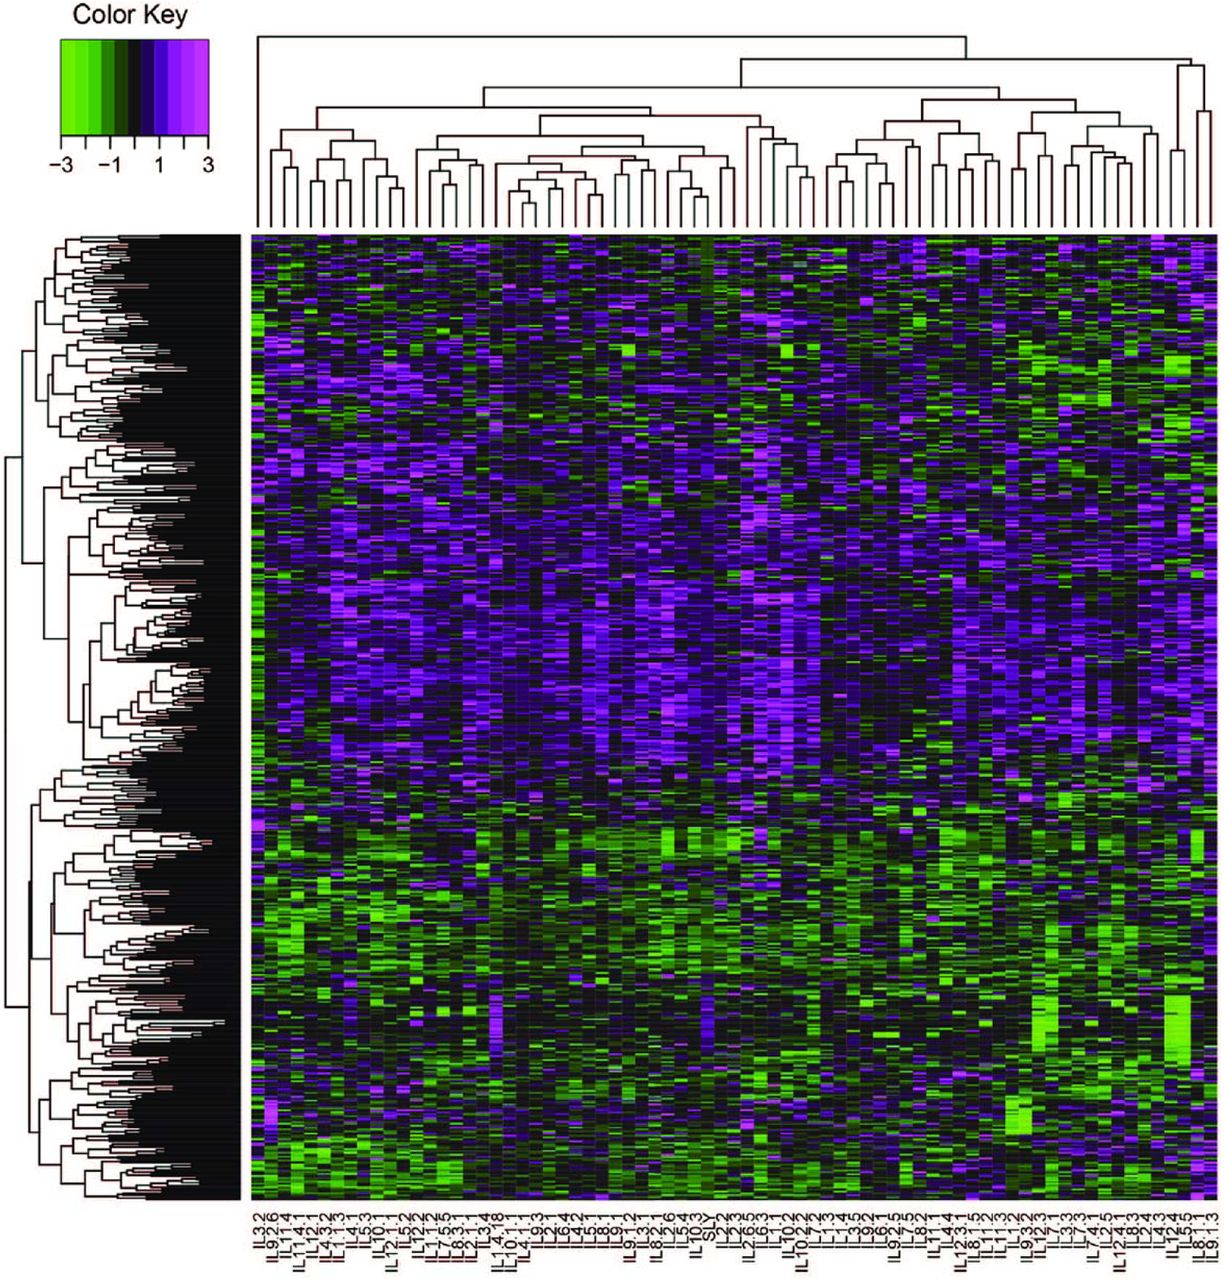 Auxin signaling is a common factor underlying natural variation in